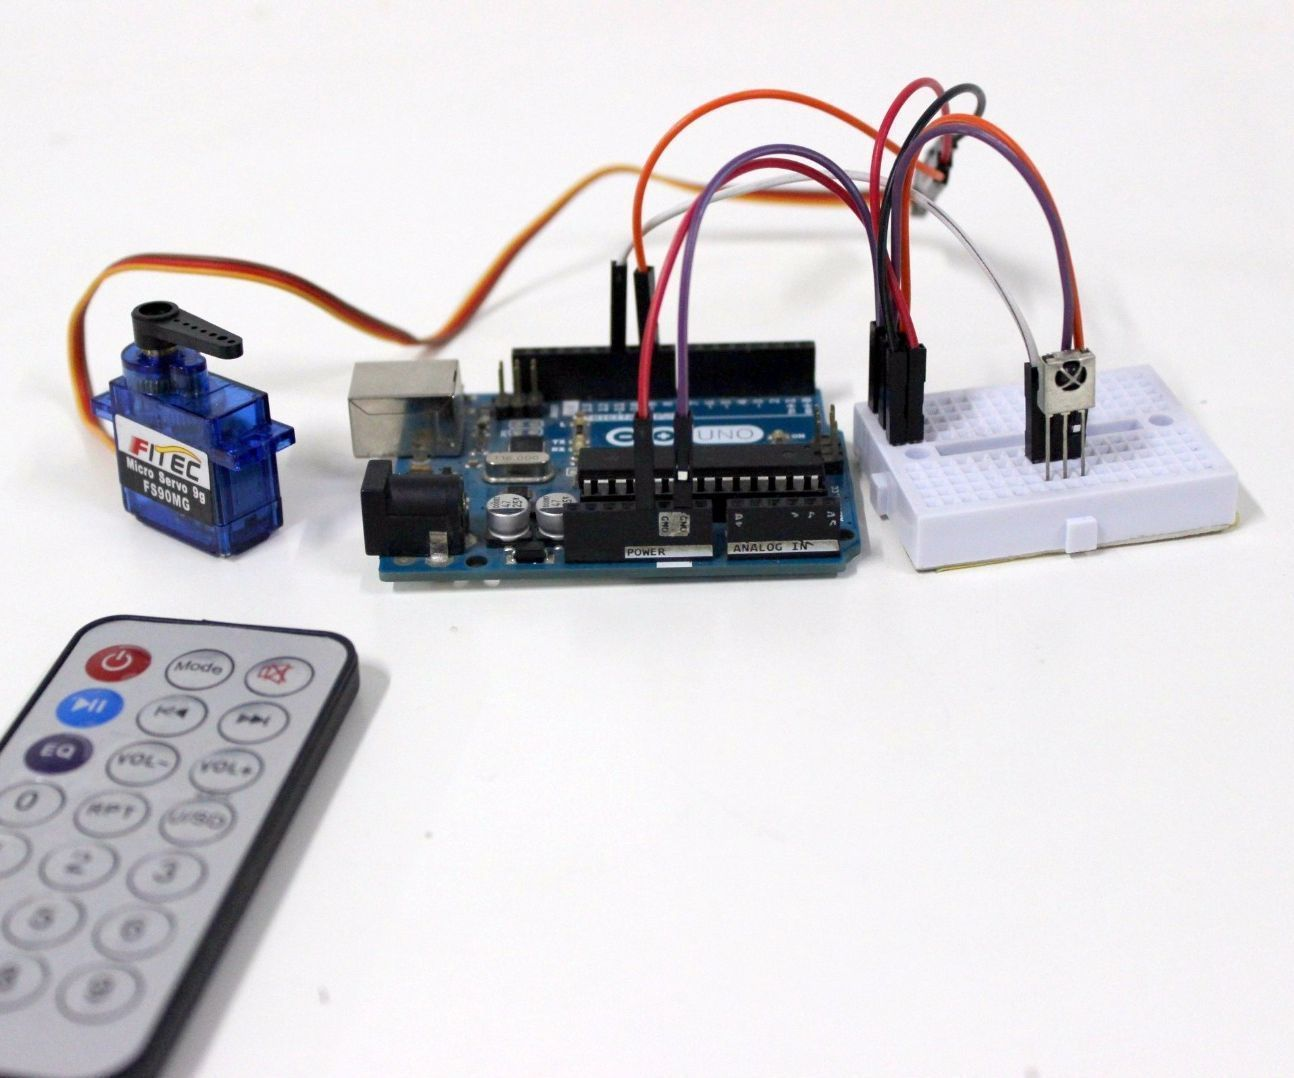 Controlling Servo Motor Using IR Remote Control: 4 Steps (with Pictures)